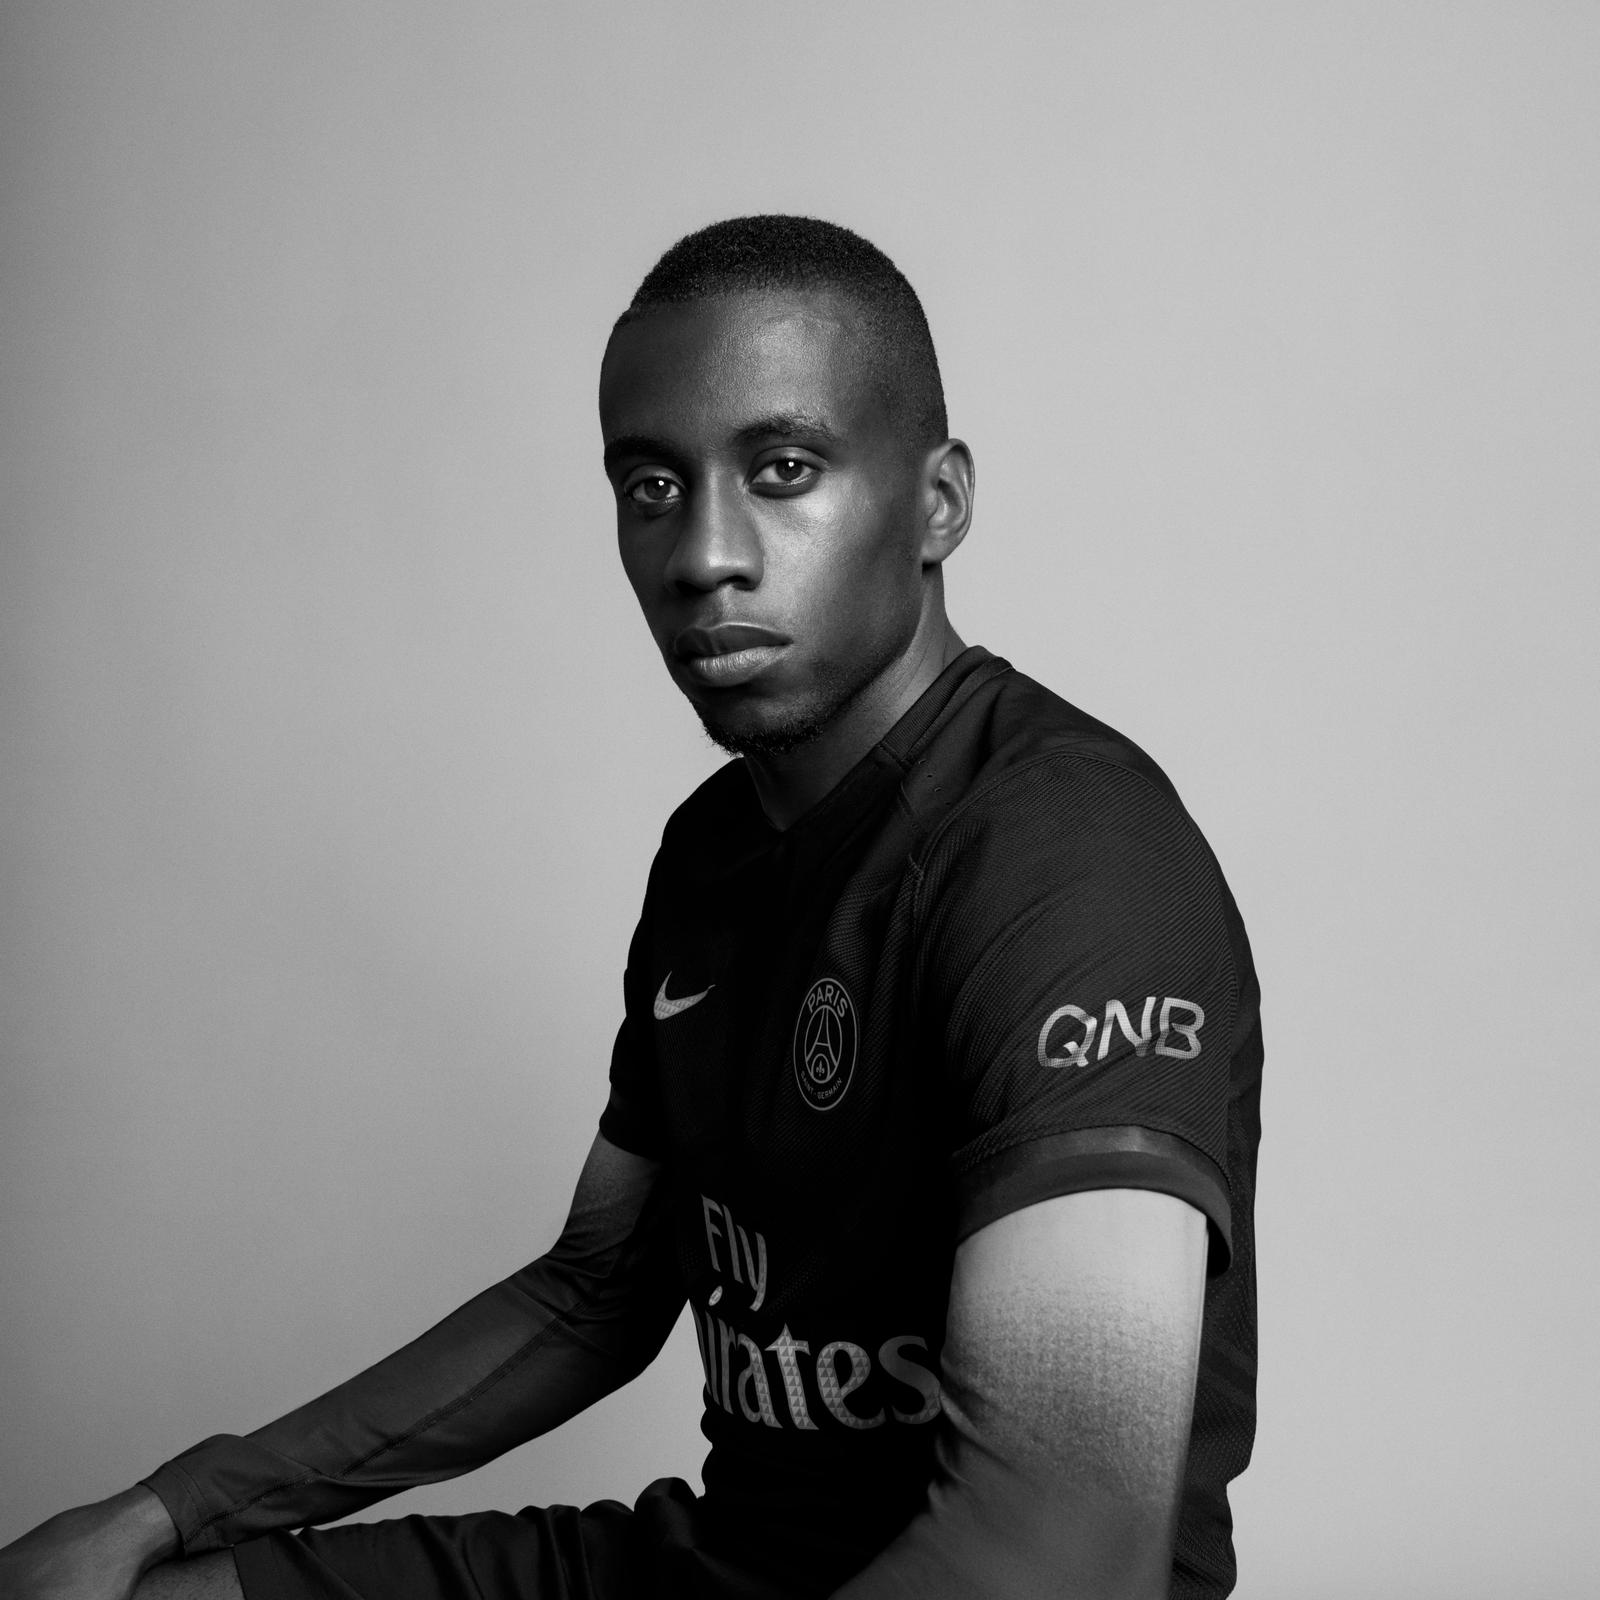 Psg darklight matuidi01 0027 original1 square 1600